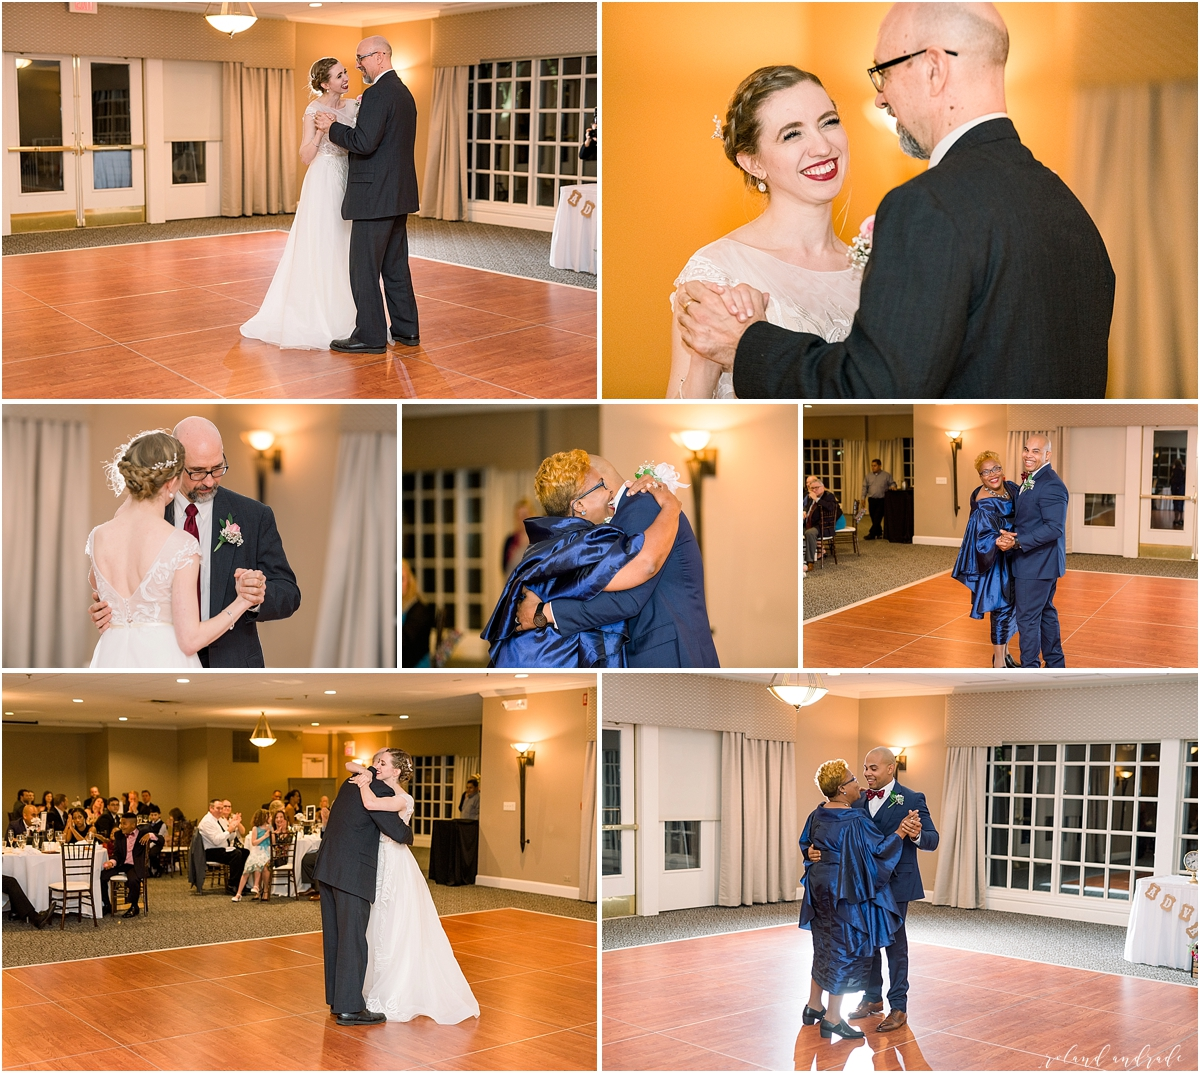 Naperville Country Club Wedding, Chicago Wedding Photographer, Naperville Wedding Photographer, Best Photographer In Aurora, Best Photographer In Chicago_0078.jpg